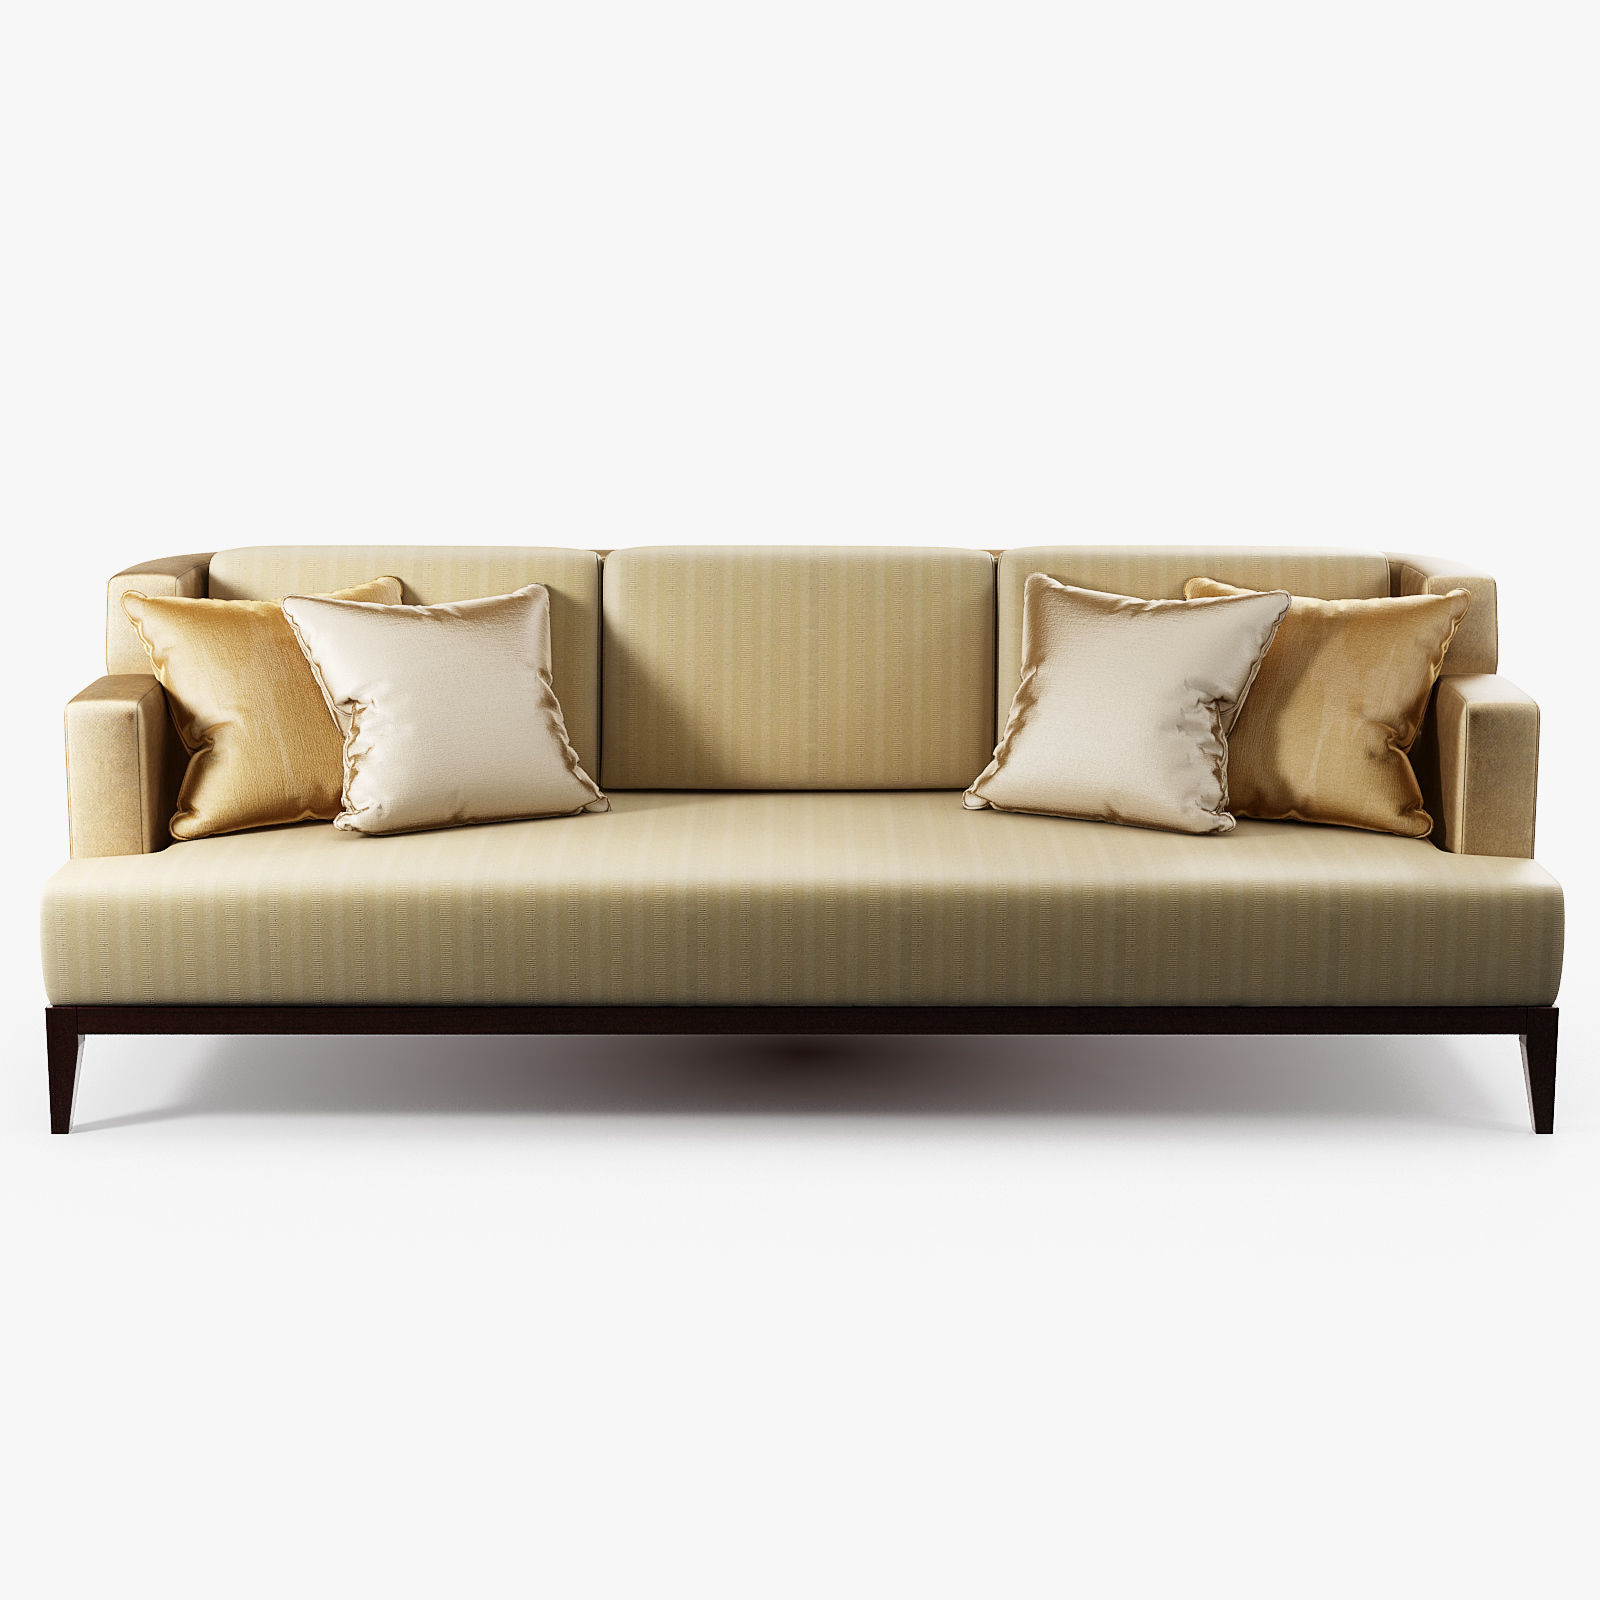 Canape Sofa Ecart International Toi And Moi Canape Sofa 3d Model